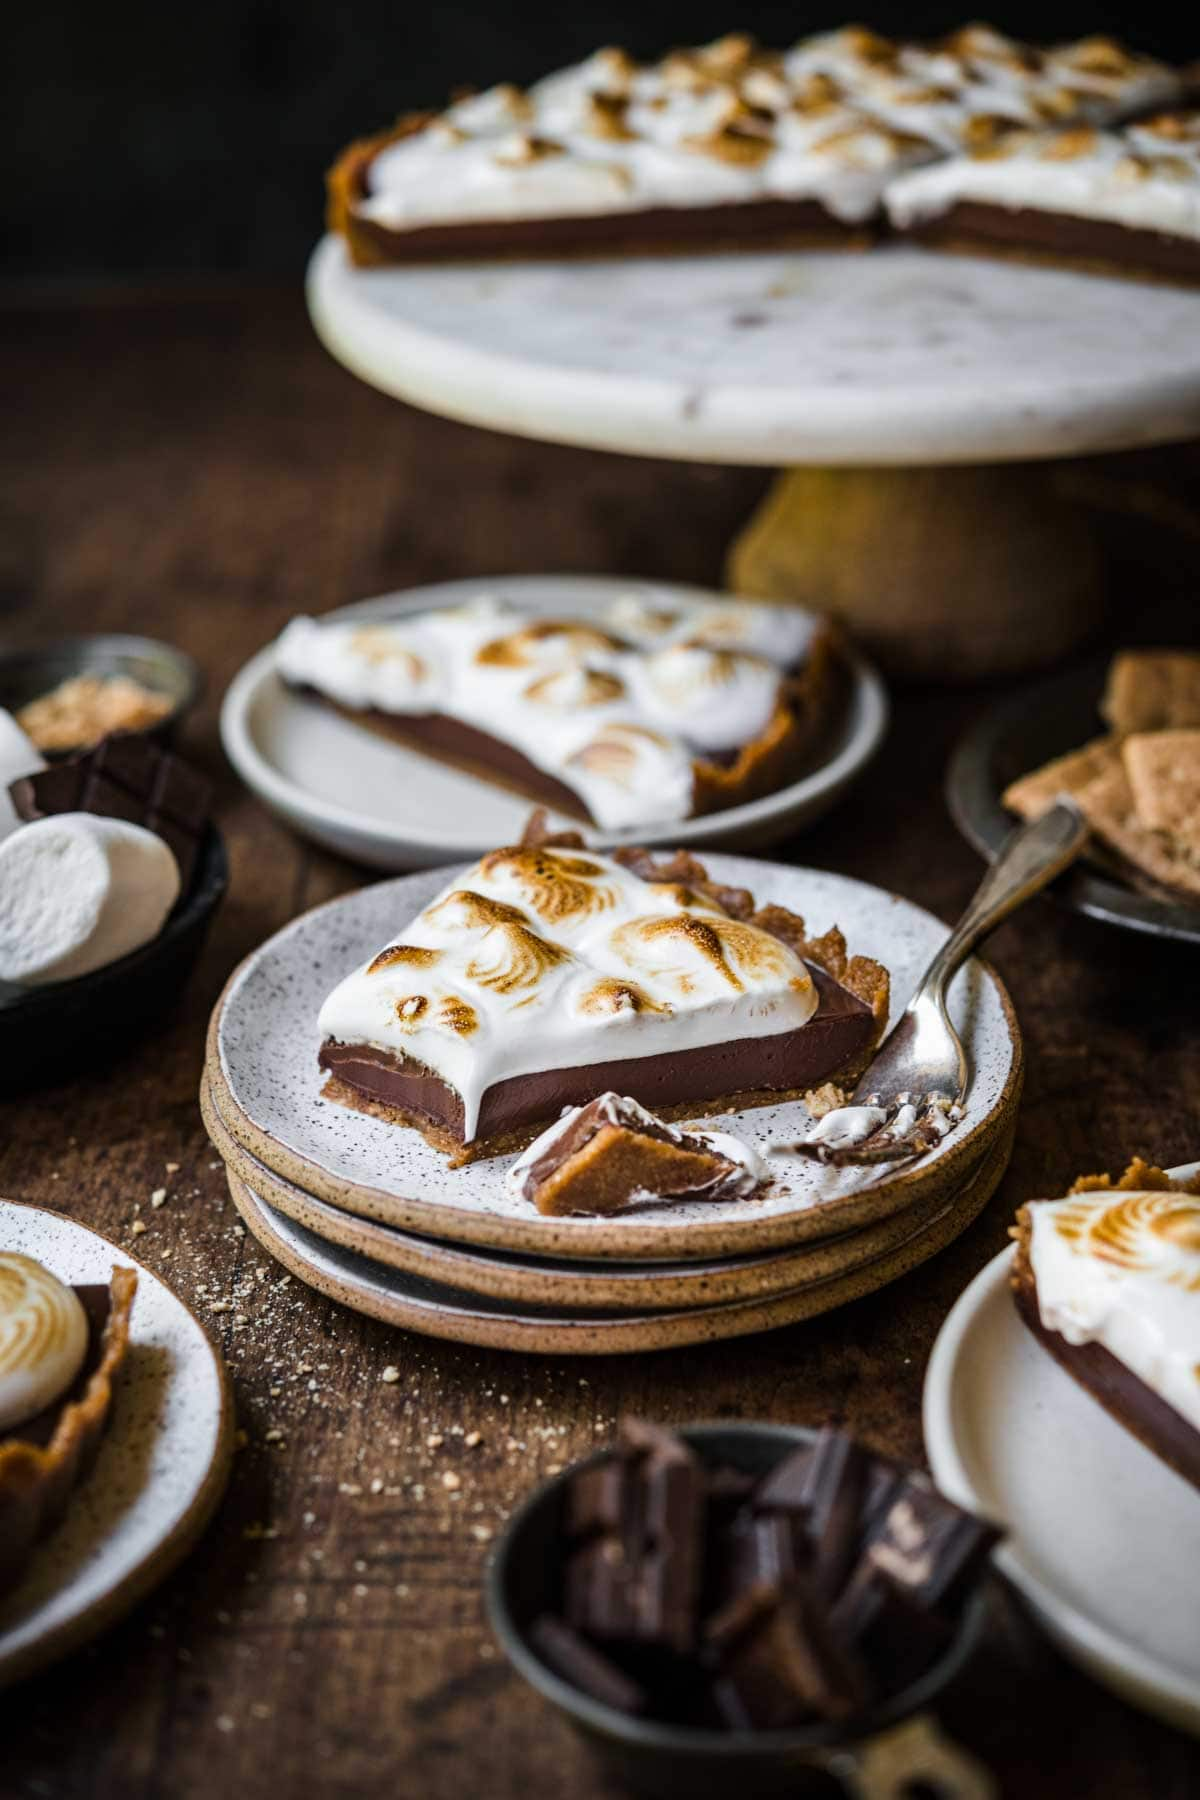 side view of slice of vegan s'mores tart on stack of plates on wood table.